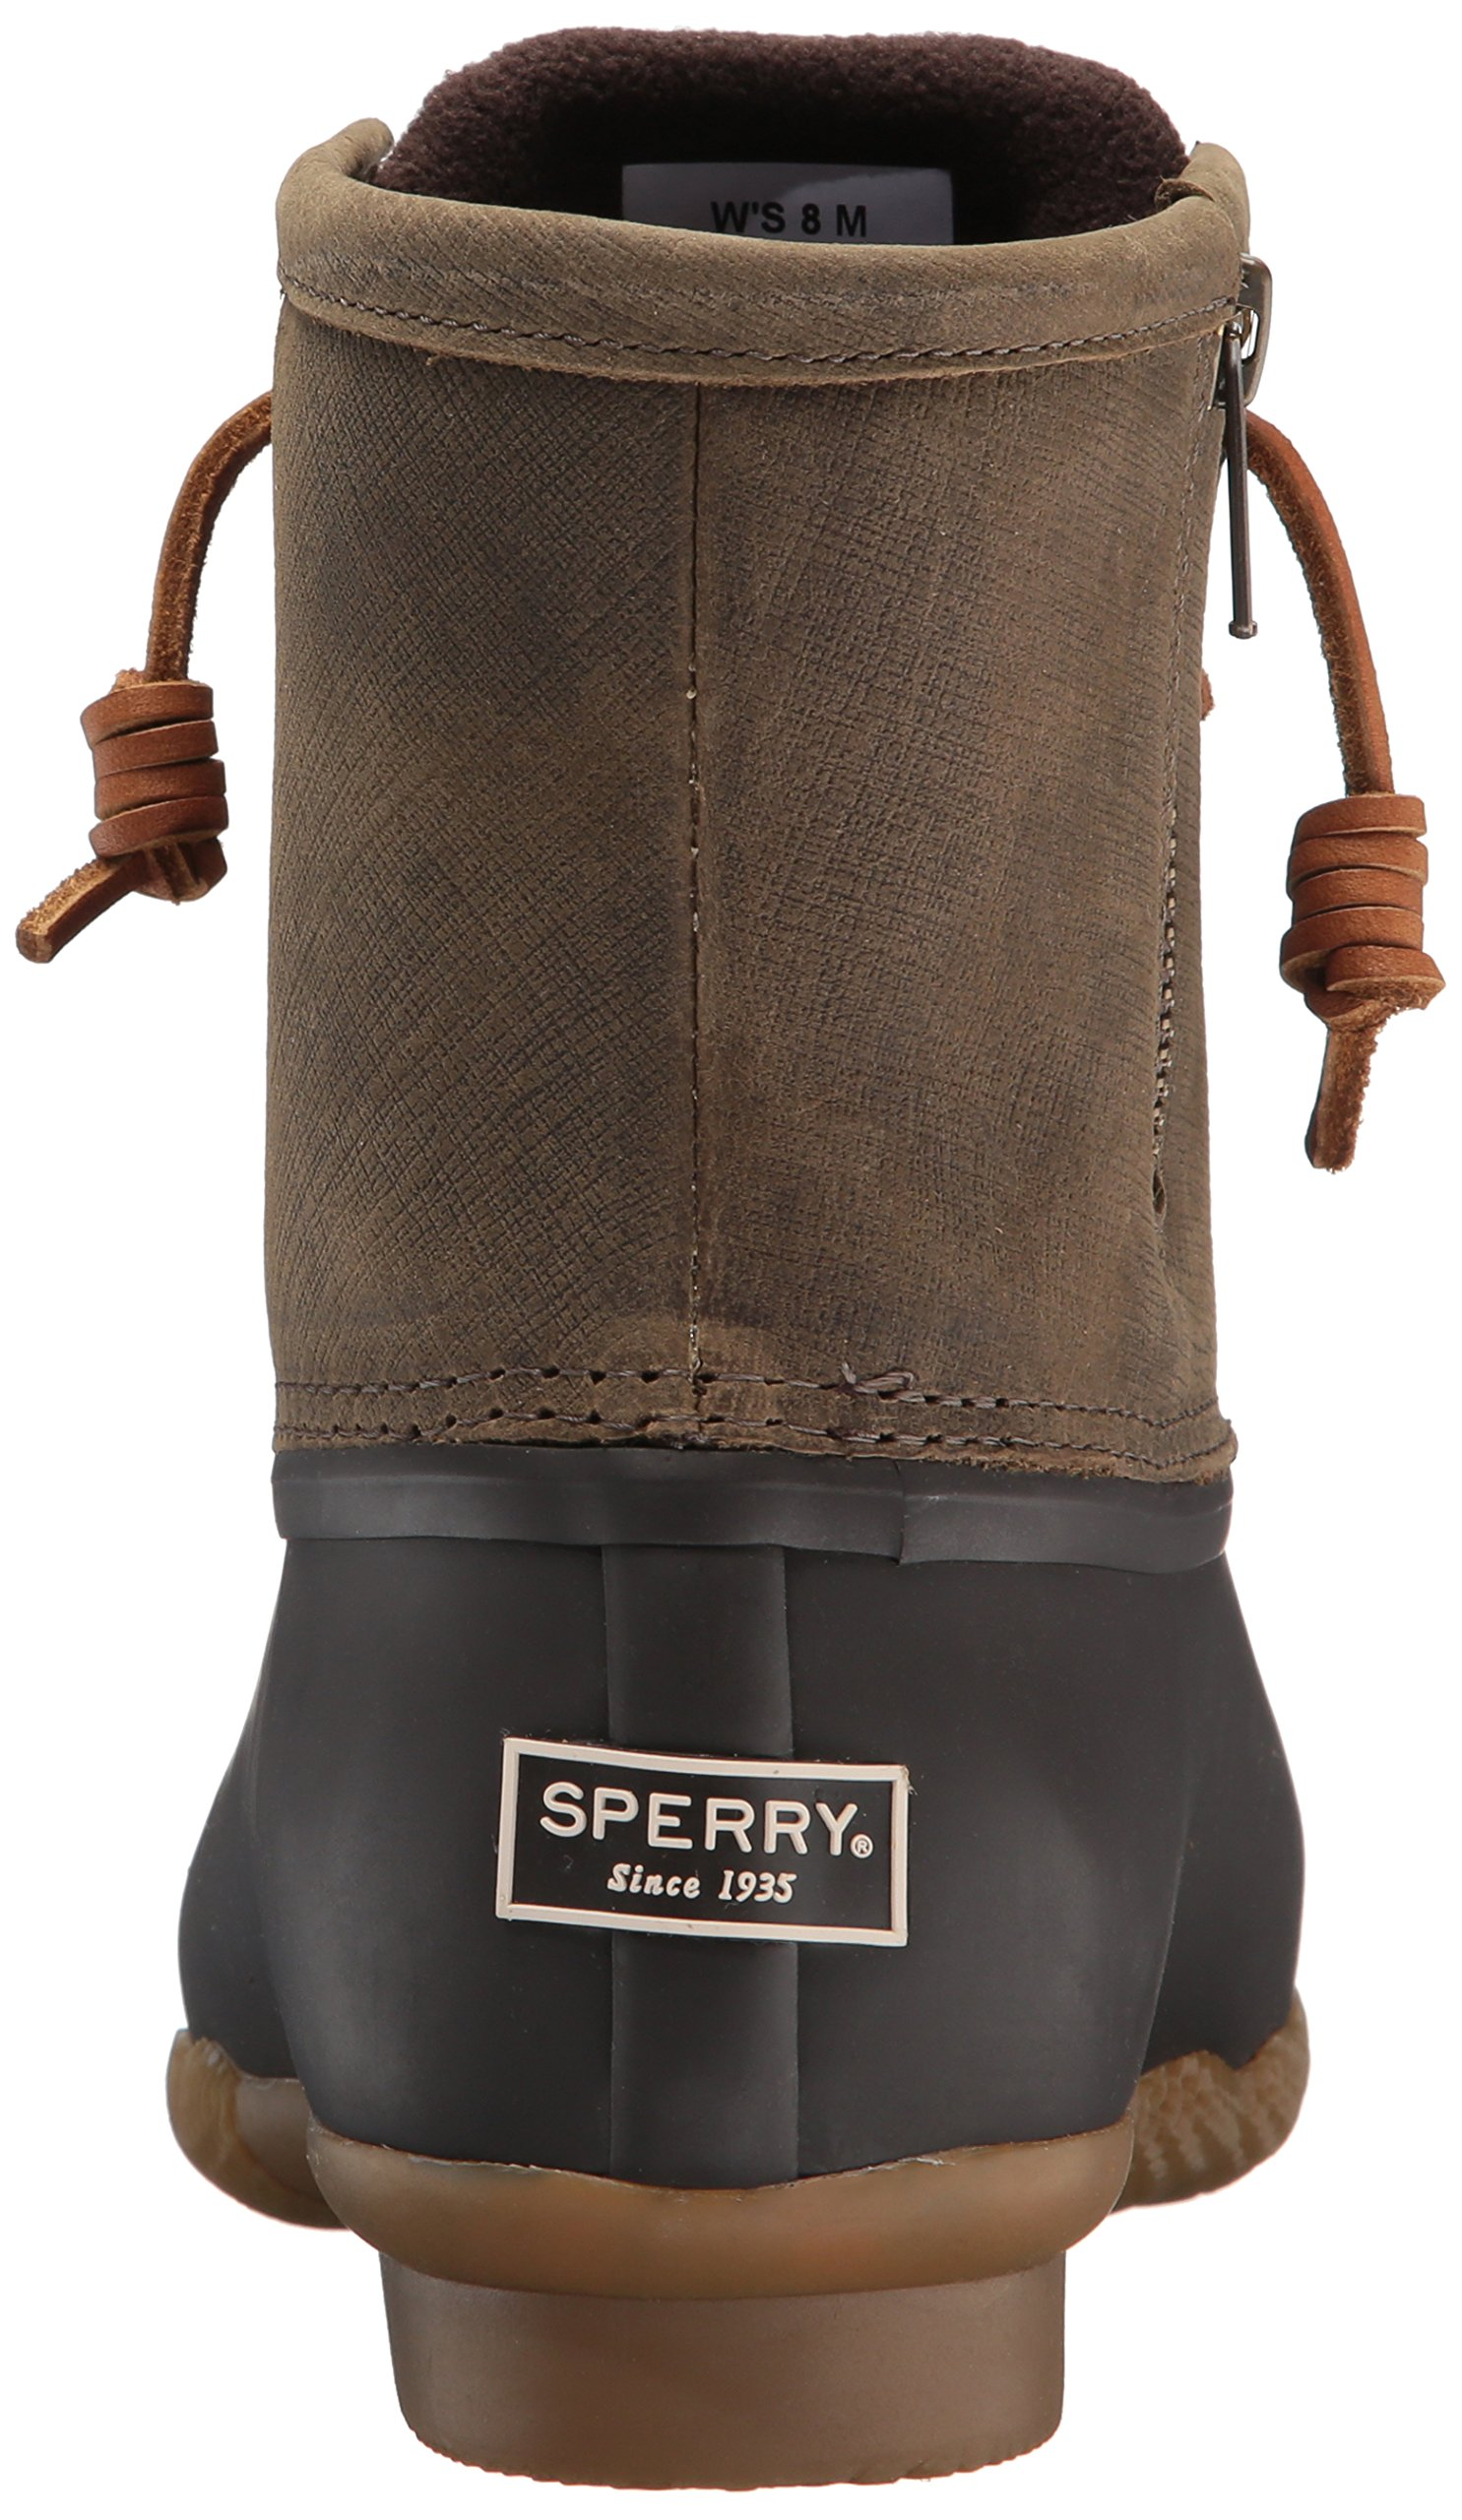 Sperry Top-Sider Women's Saltwater Rain Boot, Brown/Olive, 11 Medium US by Sperry Top-Sider (Image #2)